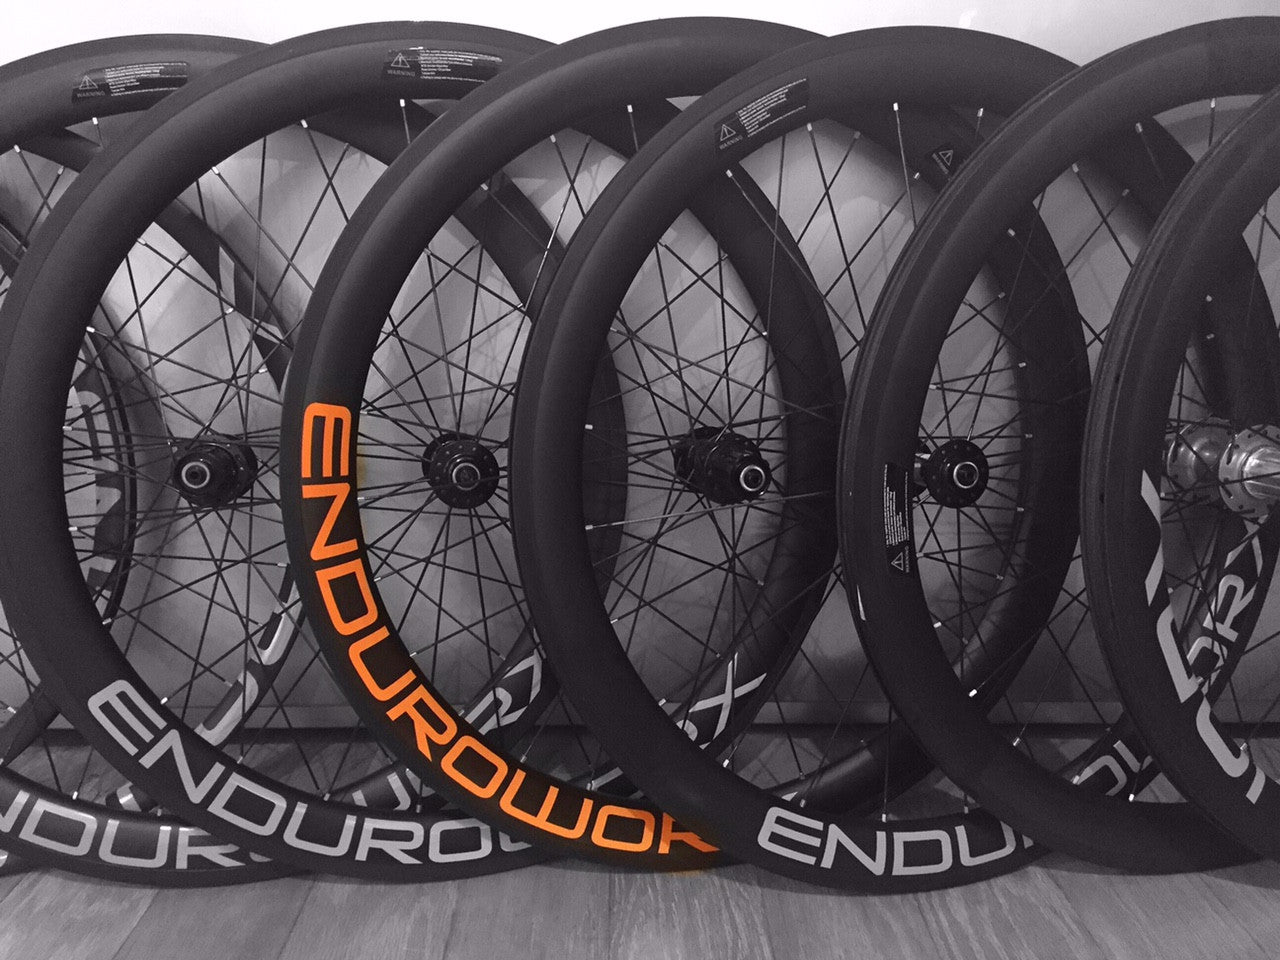 Fetch Carbon 38-50 - Enduroworx